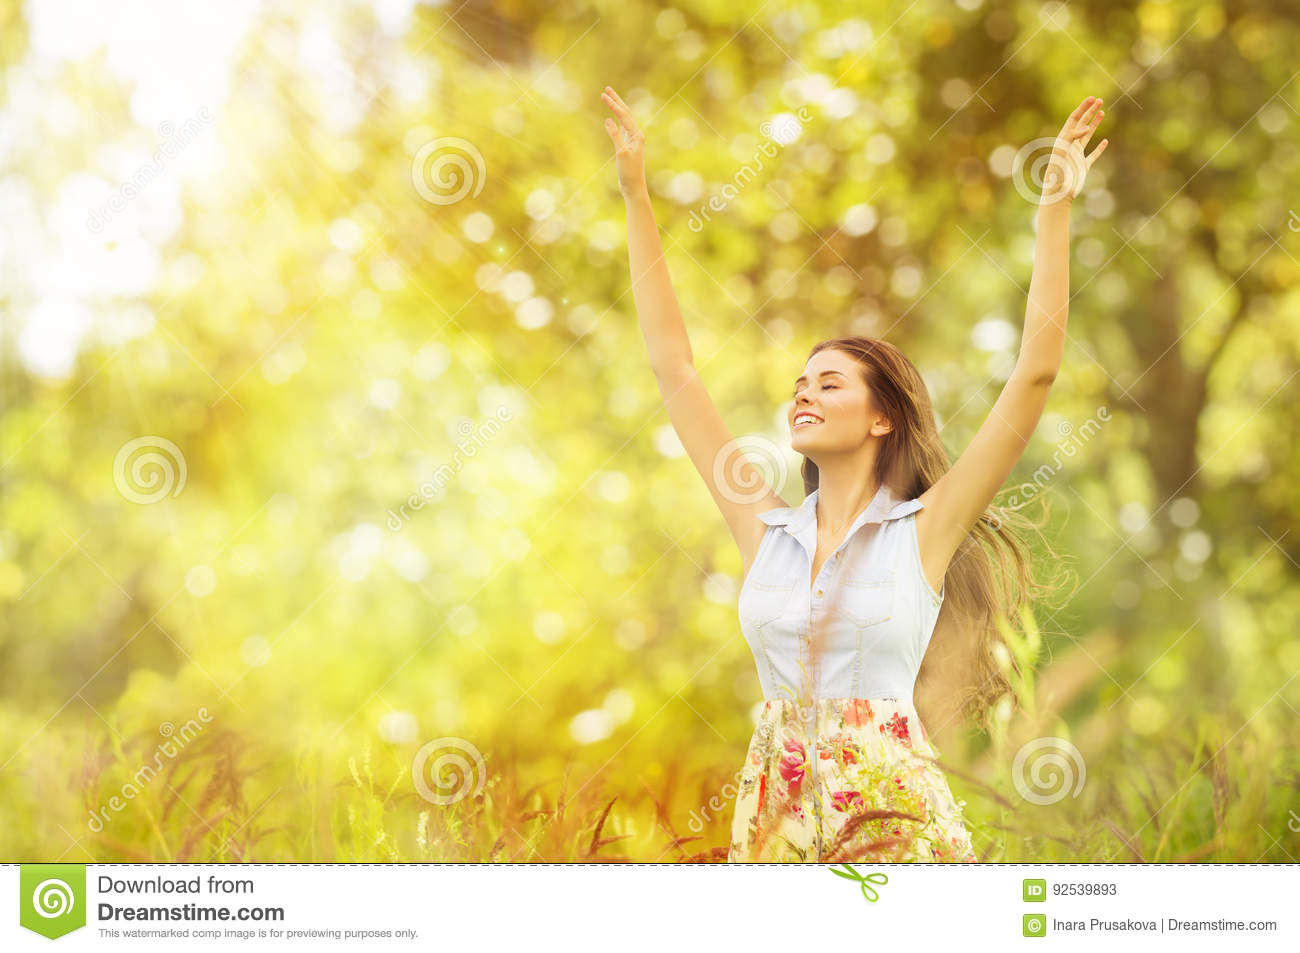 Happy Woman Life Style, Smiling Girl Raised Open Arms, Outdoor